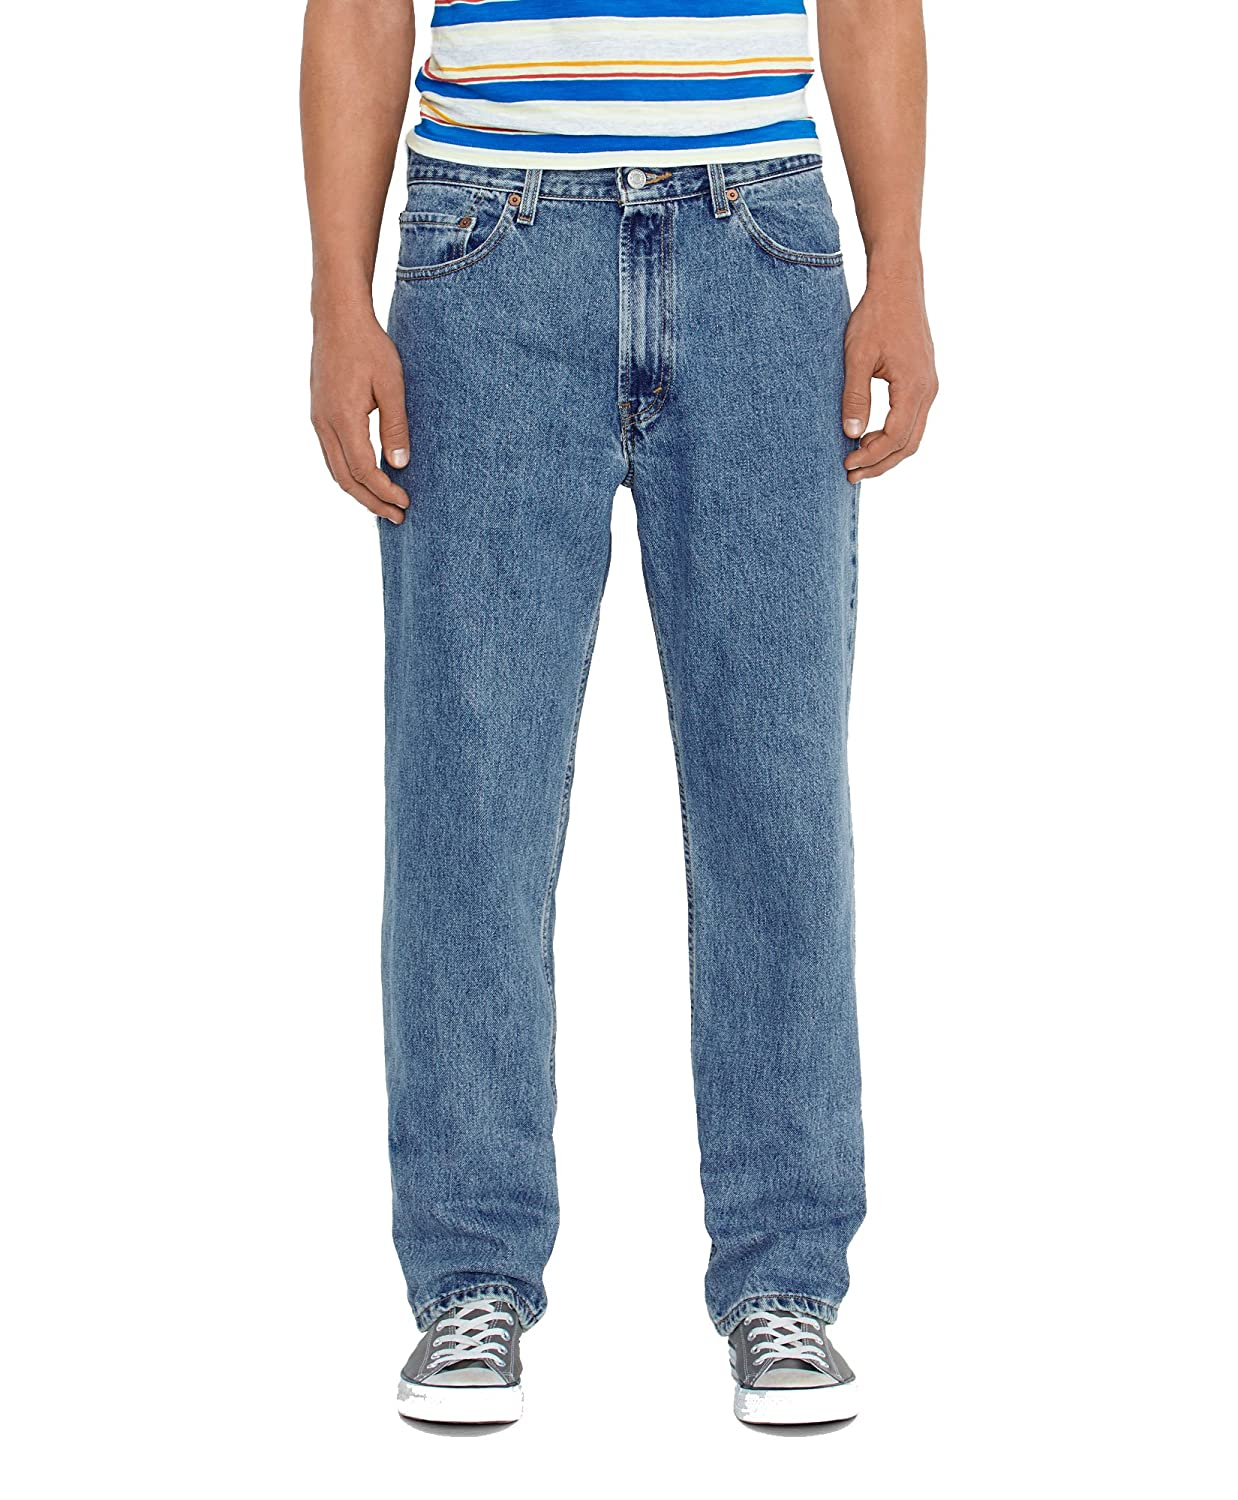 65845cdf8d2 Levi s  Mens Men s 550¿ Relaxed Fit Medium Stonewash Jeans at Amazon Men s  Clothing store